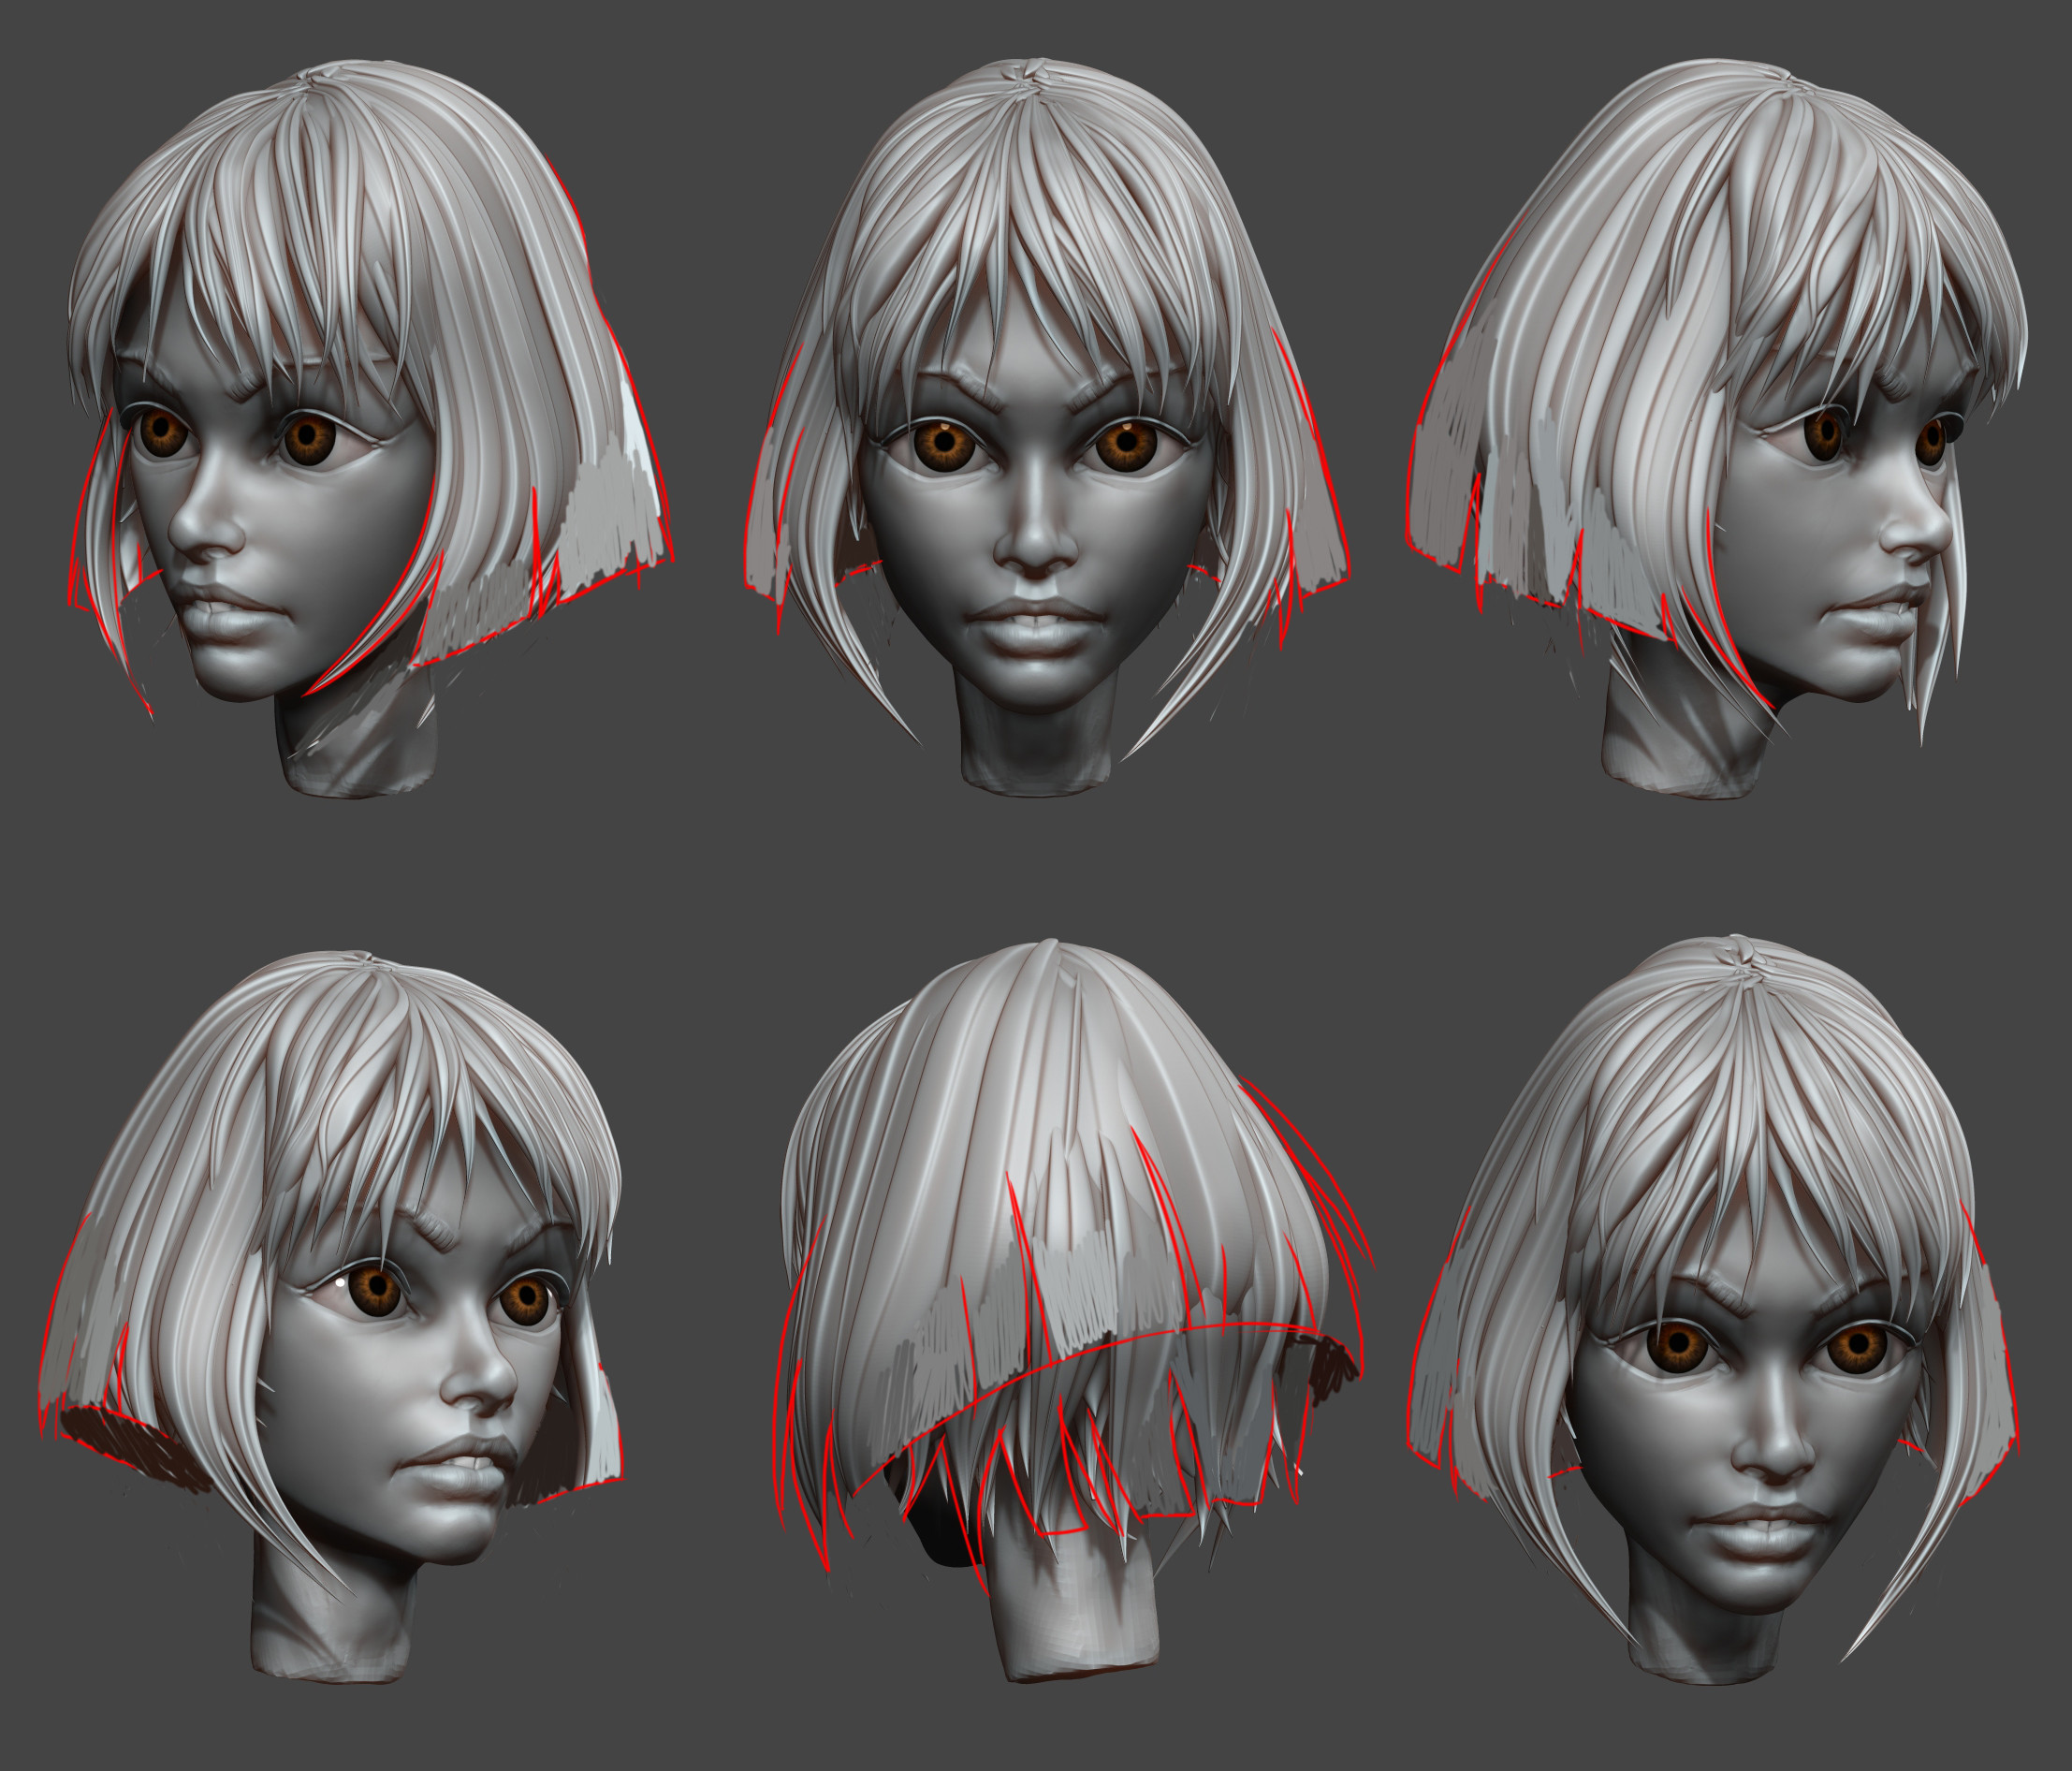 Superfast sketches for improving head and hair volume.